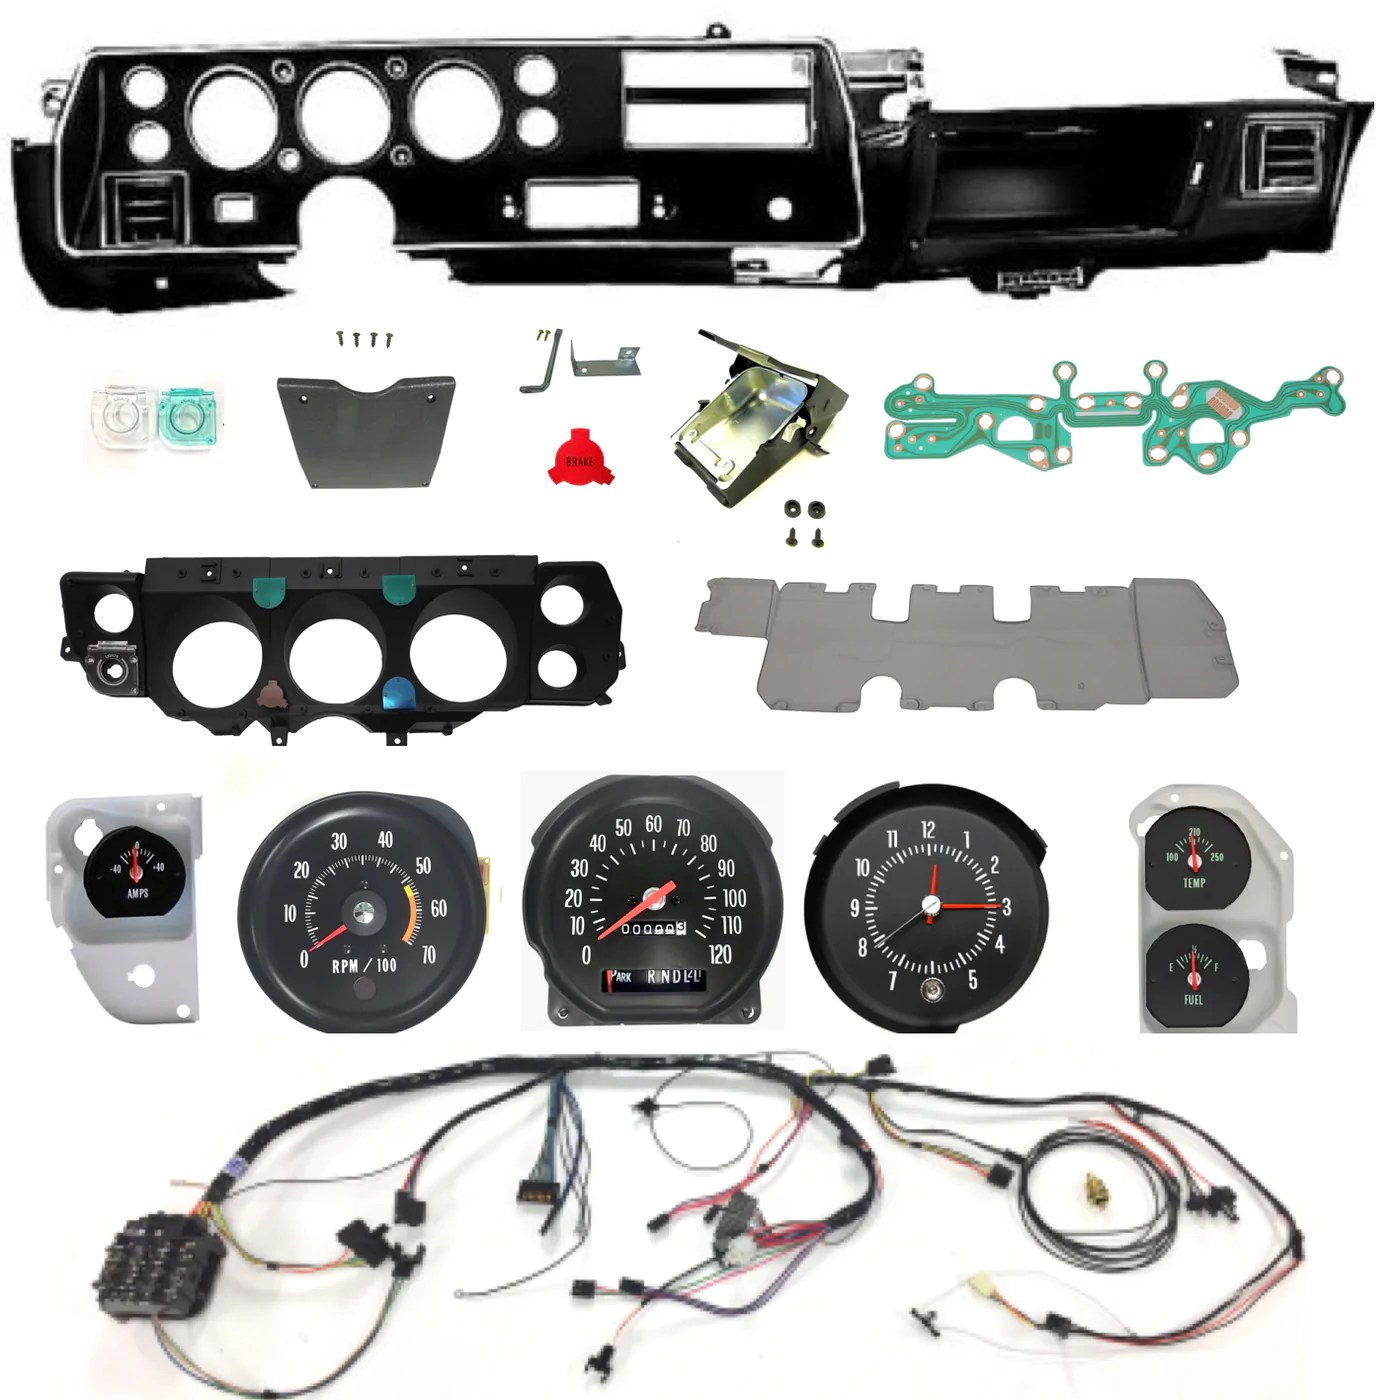 hight resolution of 1972 chevelle ss dash conversion kit el camino supersport column wiring up a 70 ss tach chevelle tech